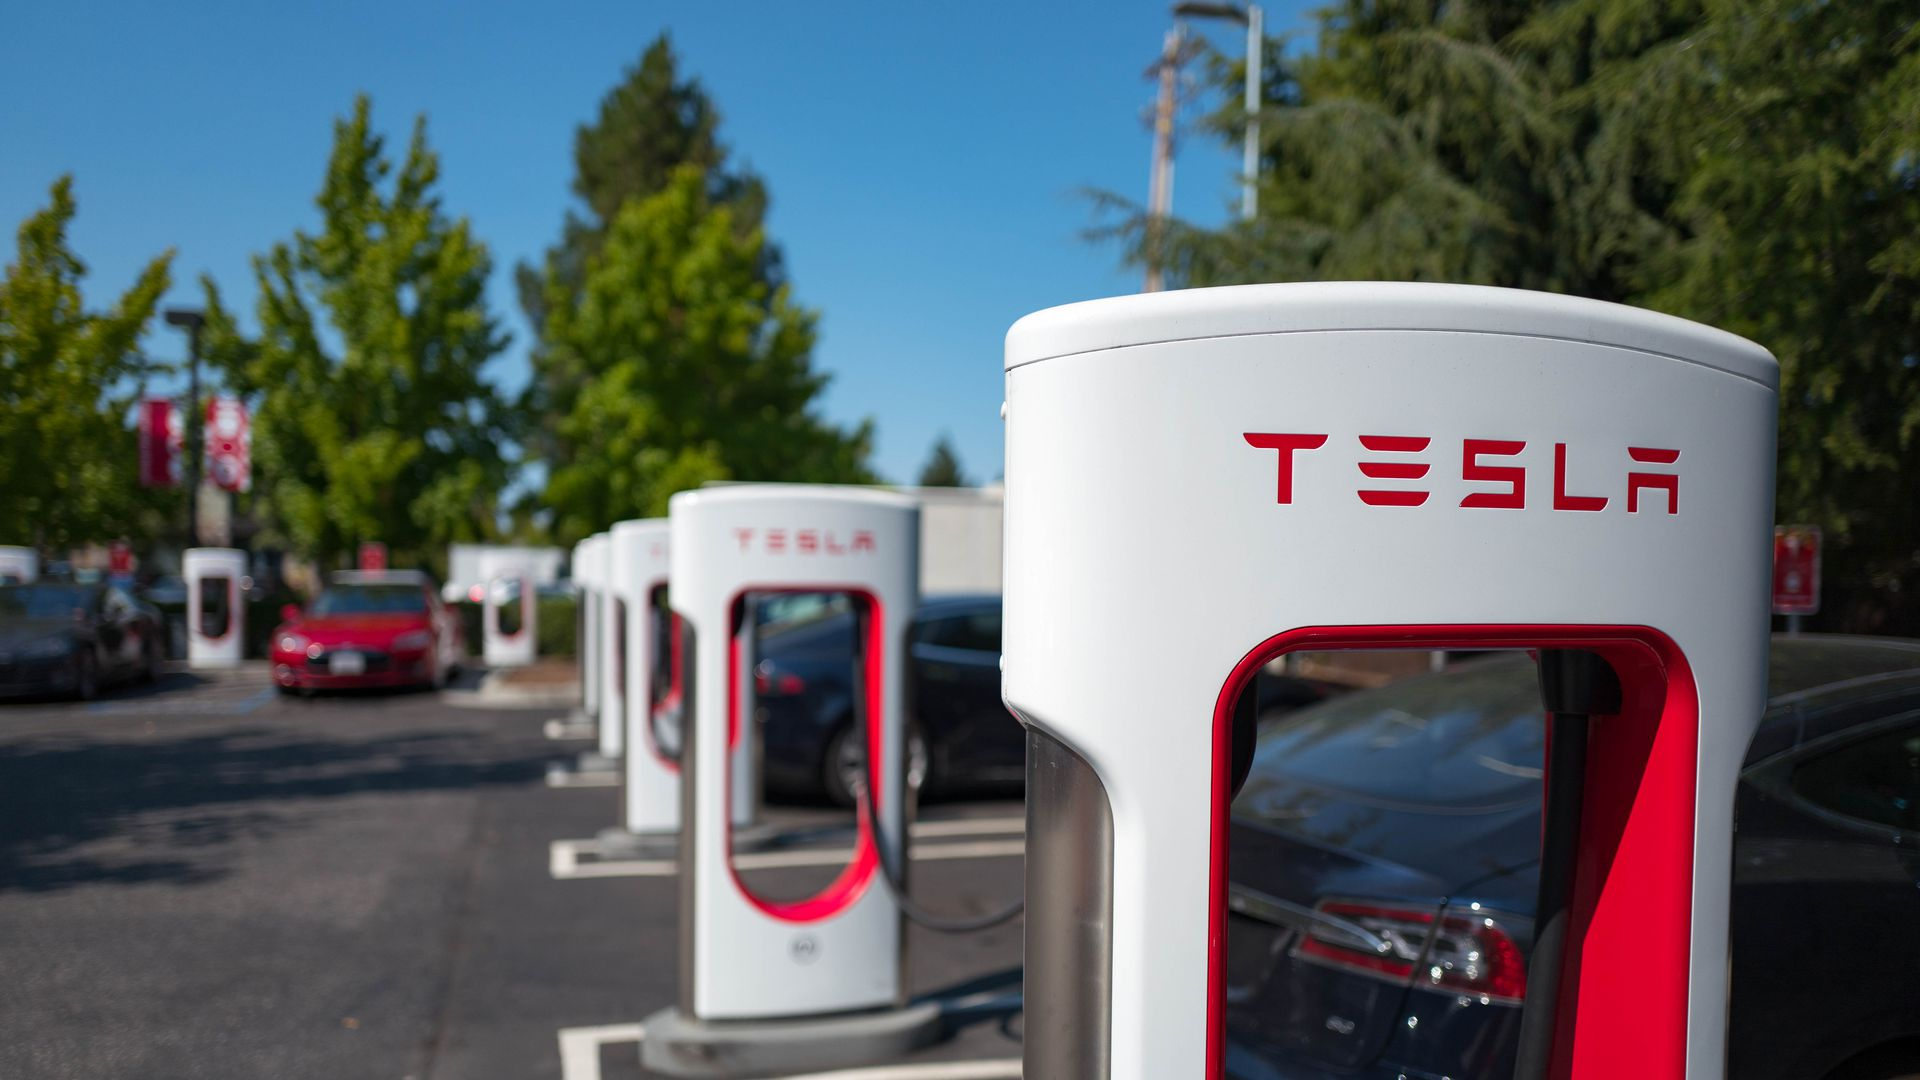 Photo of Tesla electric car chargers in a parking lot.